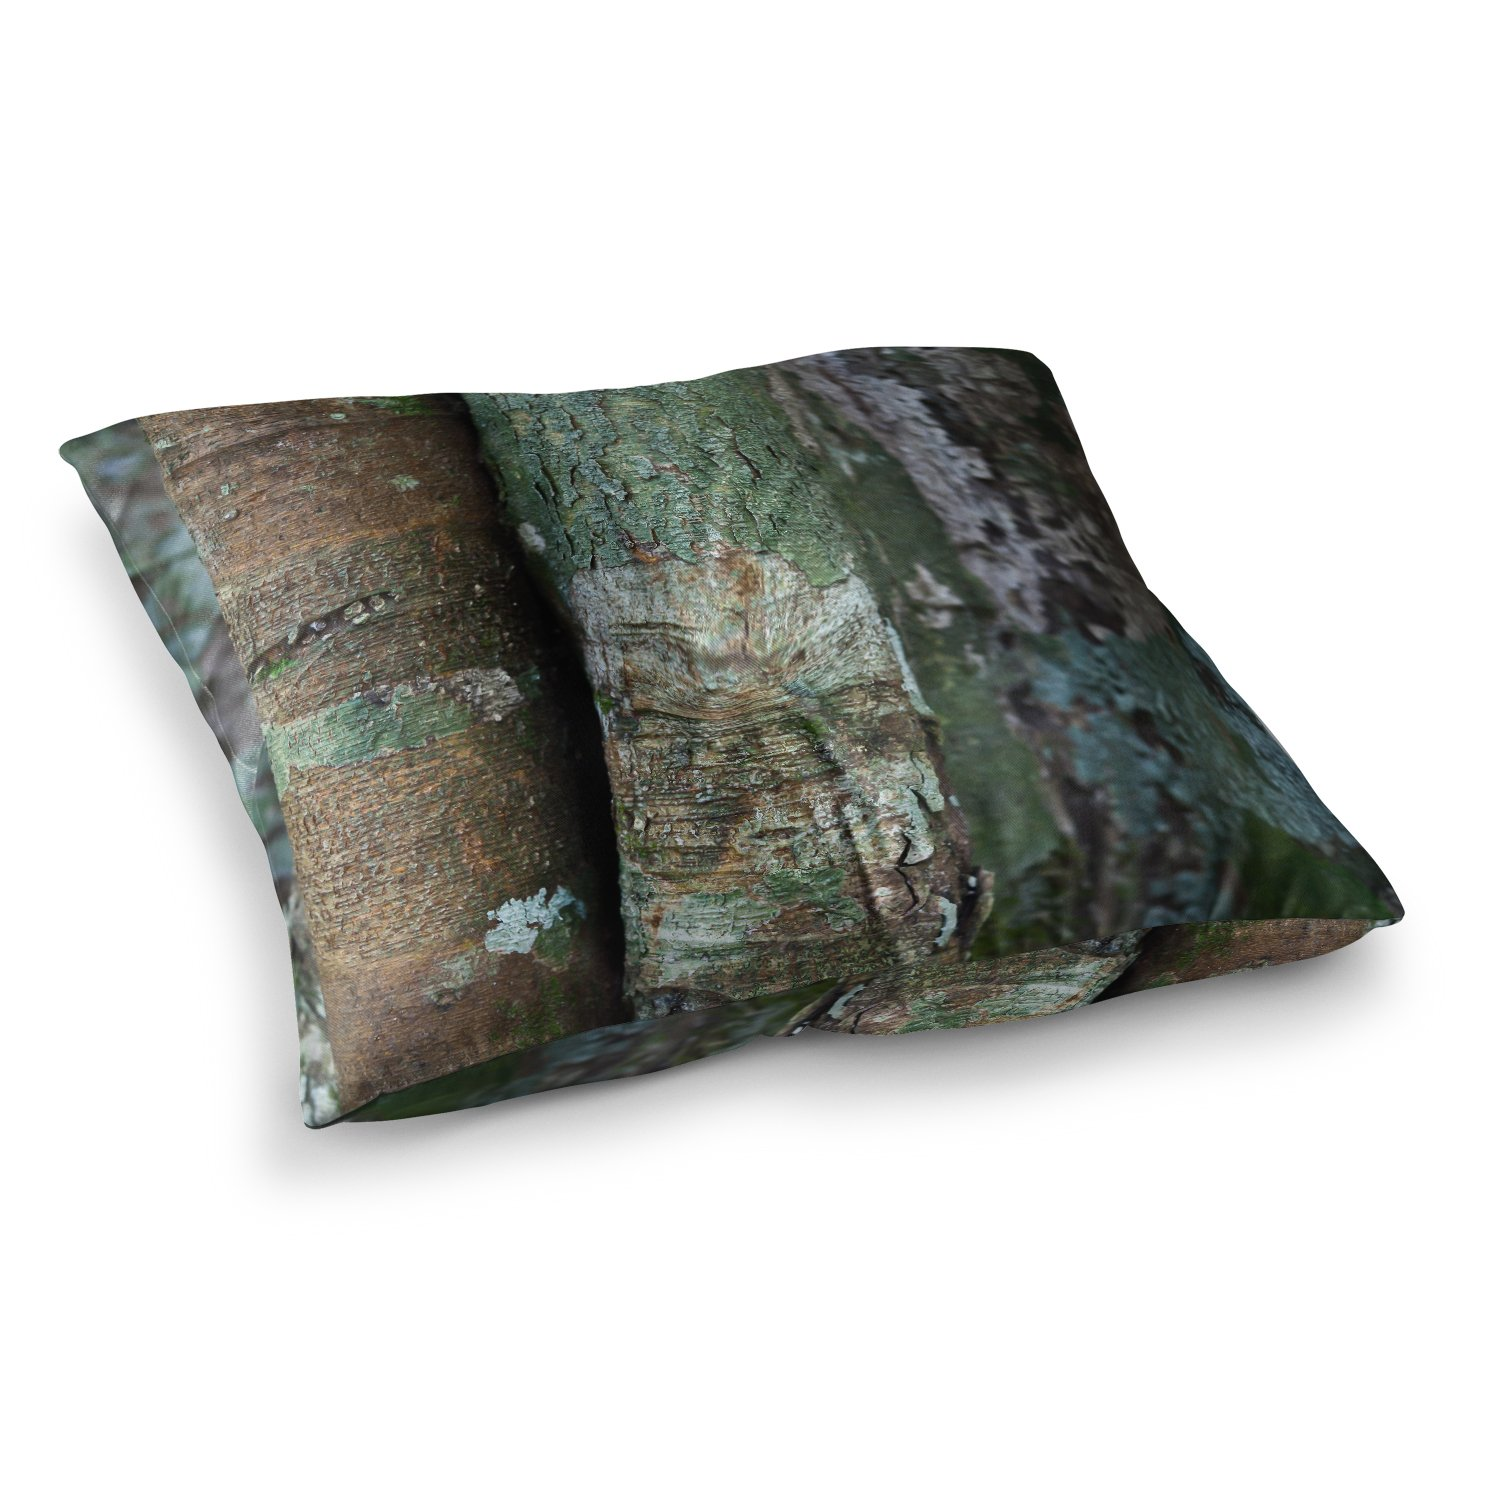 KESS InHouse Susan Sanders into the Woods Brown Rustic Square Floor Pillow x 26'' by Kess InHouse (Image #1)